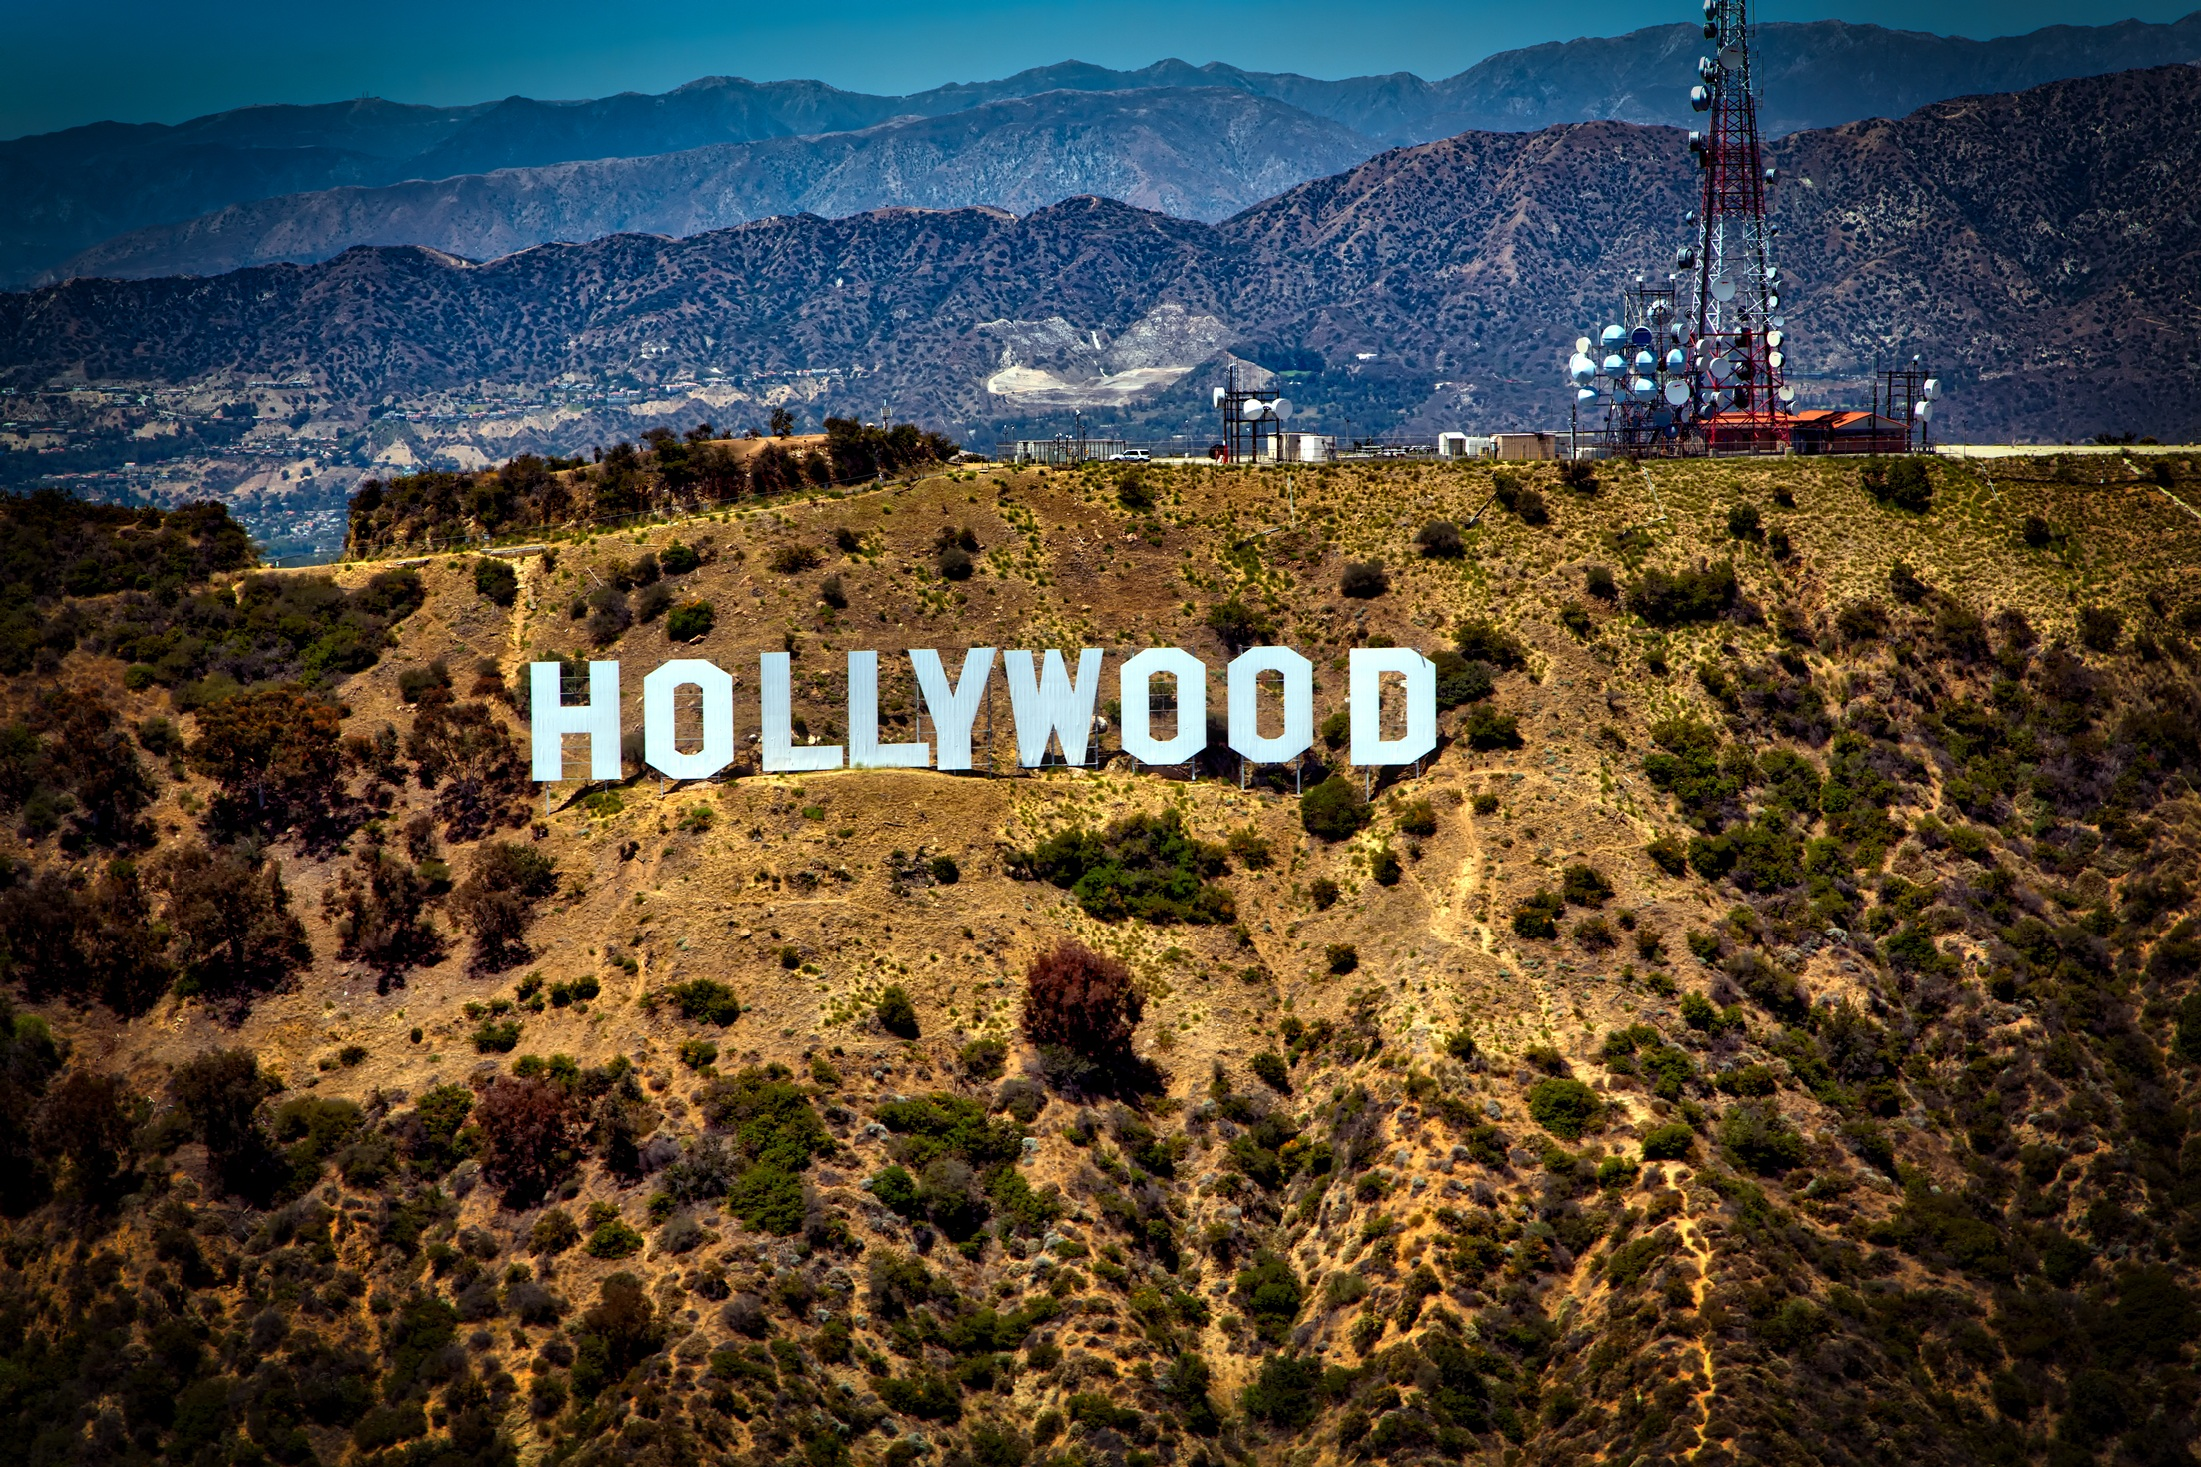 The legendary Hollywood sign in Griffith Park, Los Angeles.